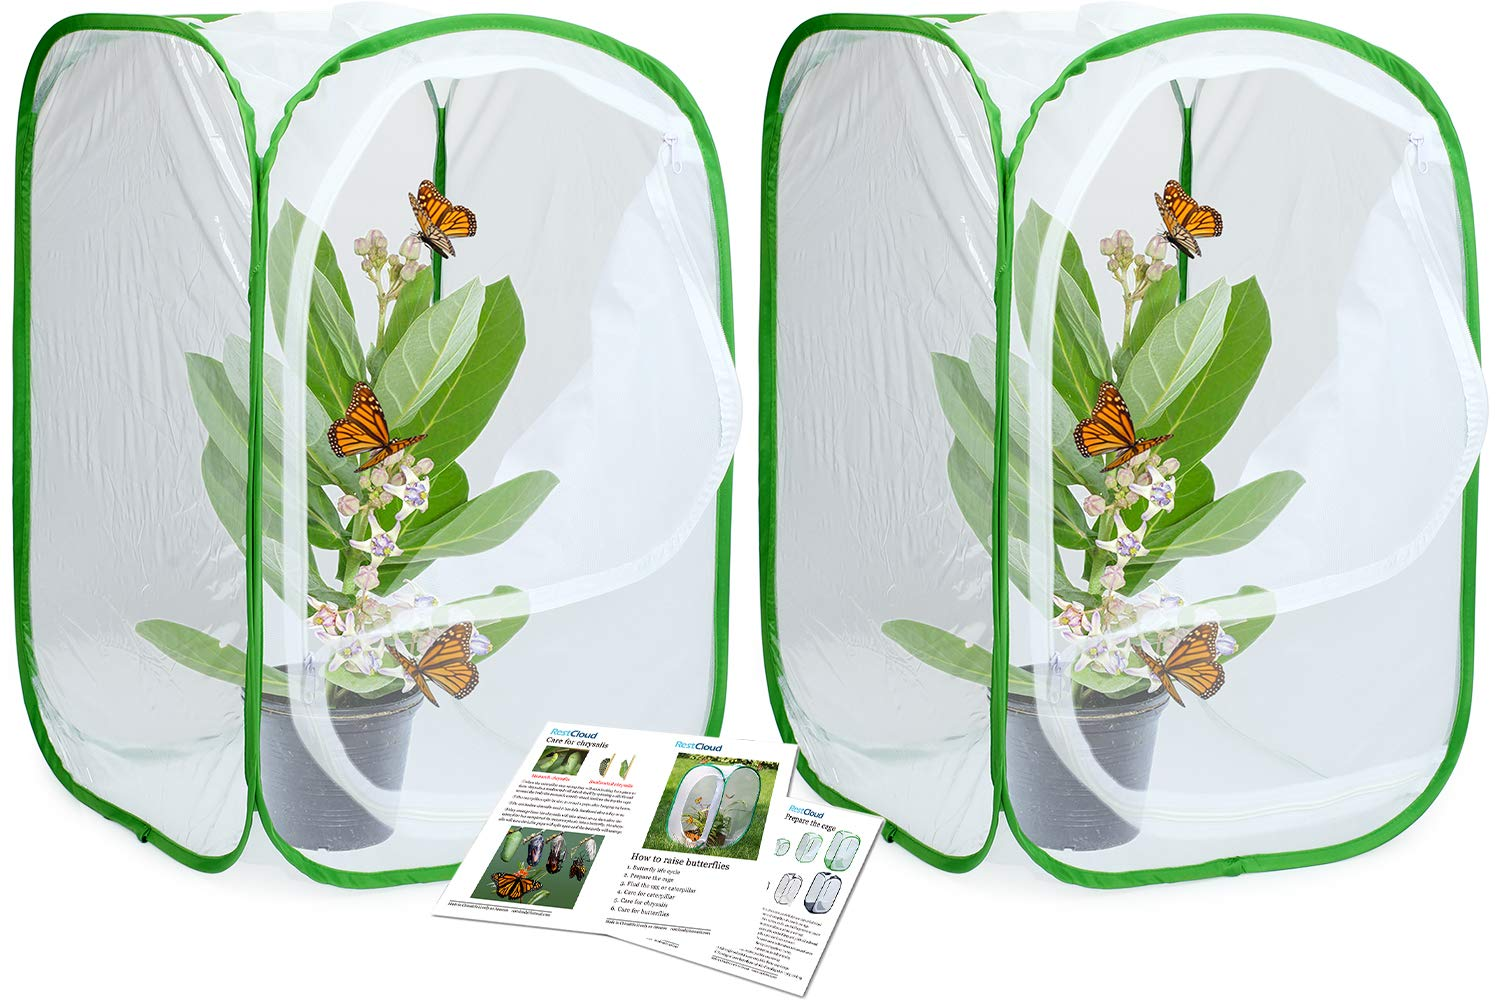 RESTCLOUD 2-Pack Insect and Butterfly Habitat Cage Terrarium Pop-up 24 Inches Tall by RESTCLOUD